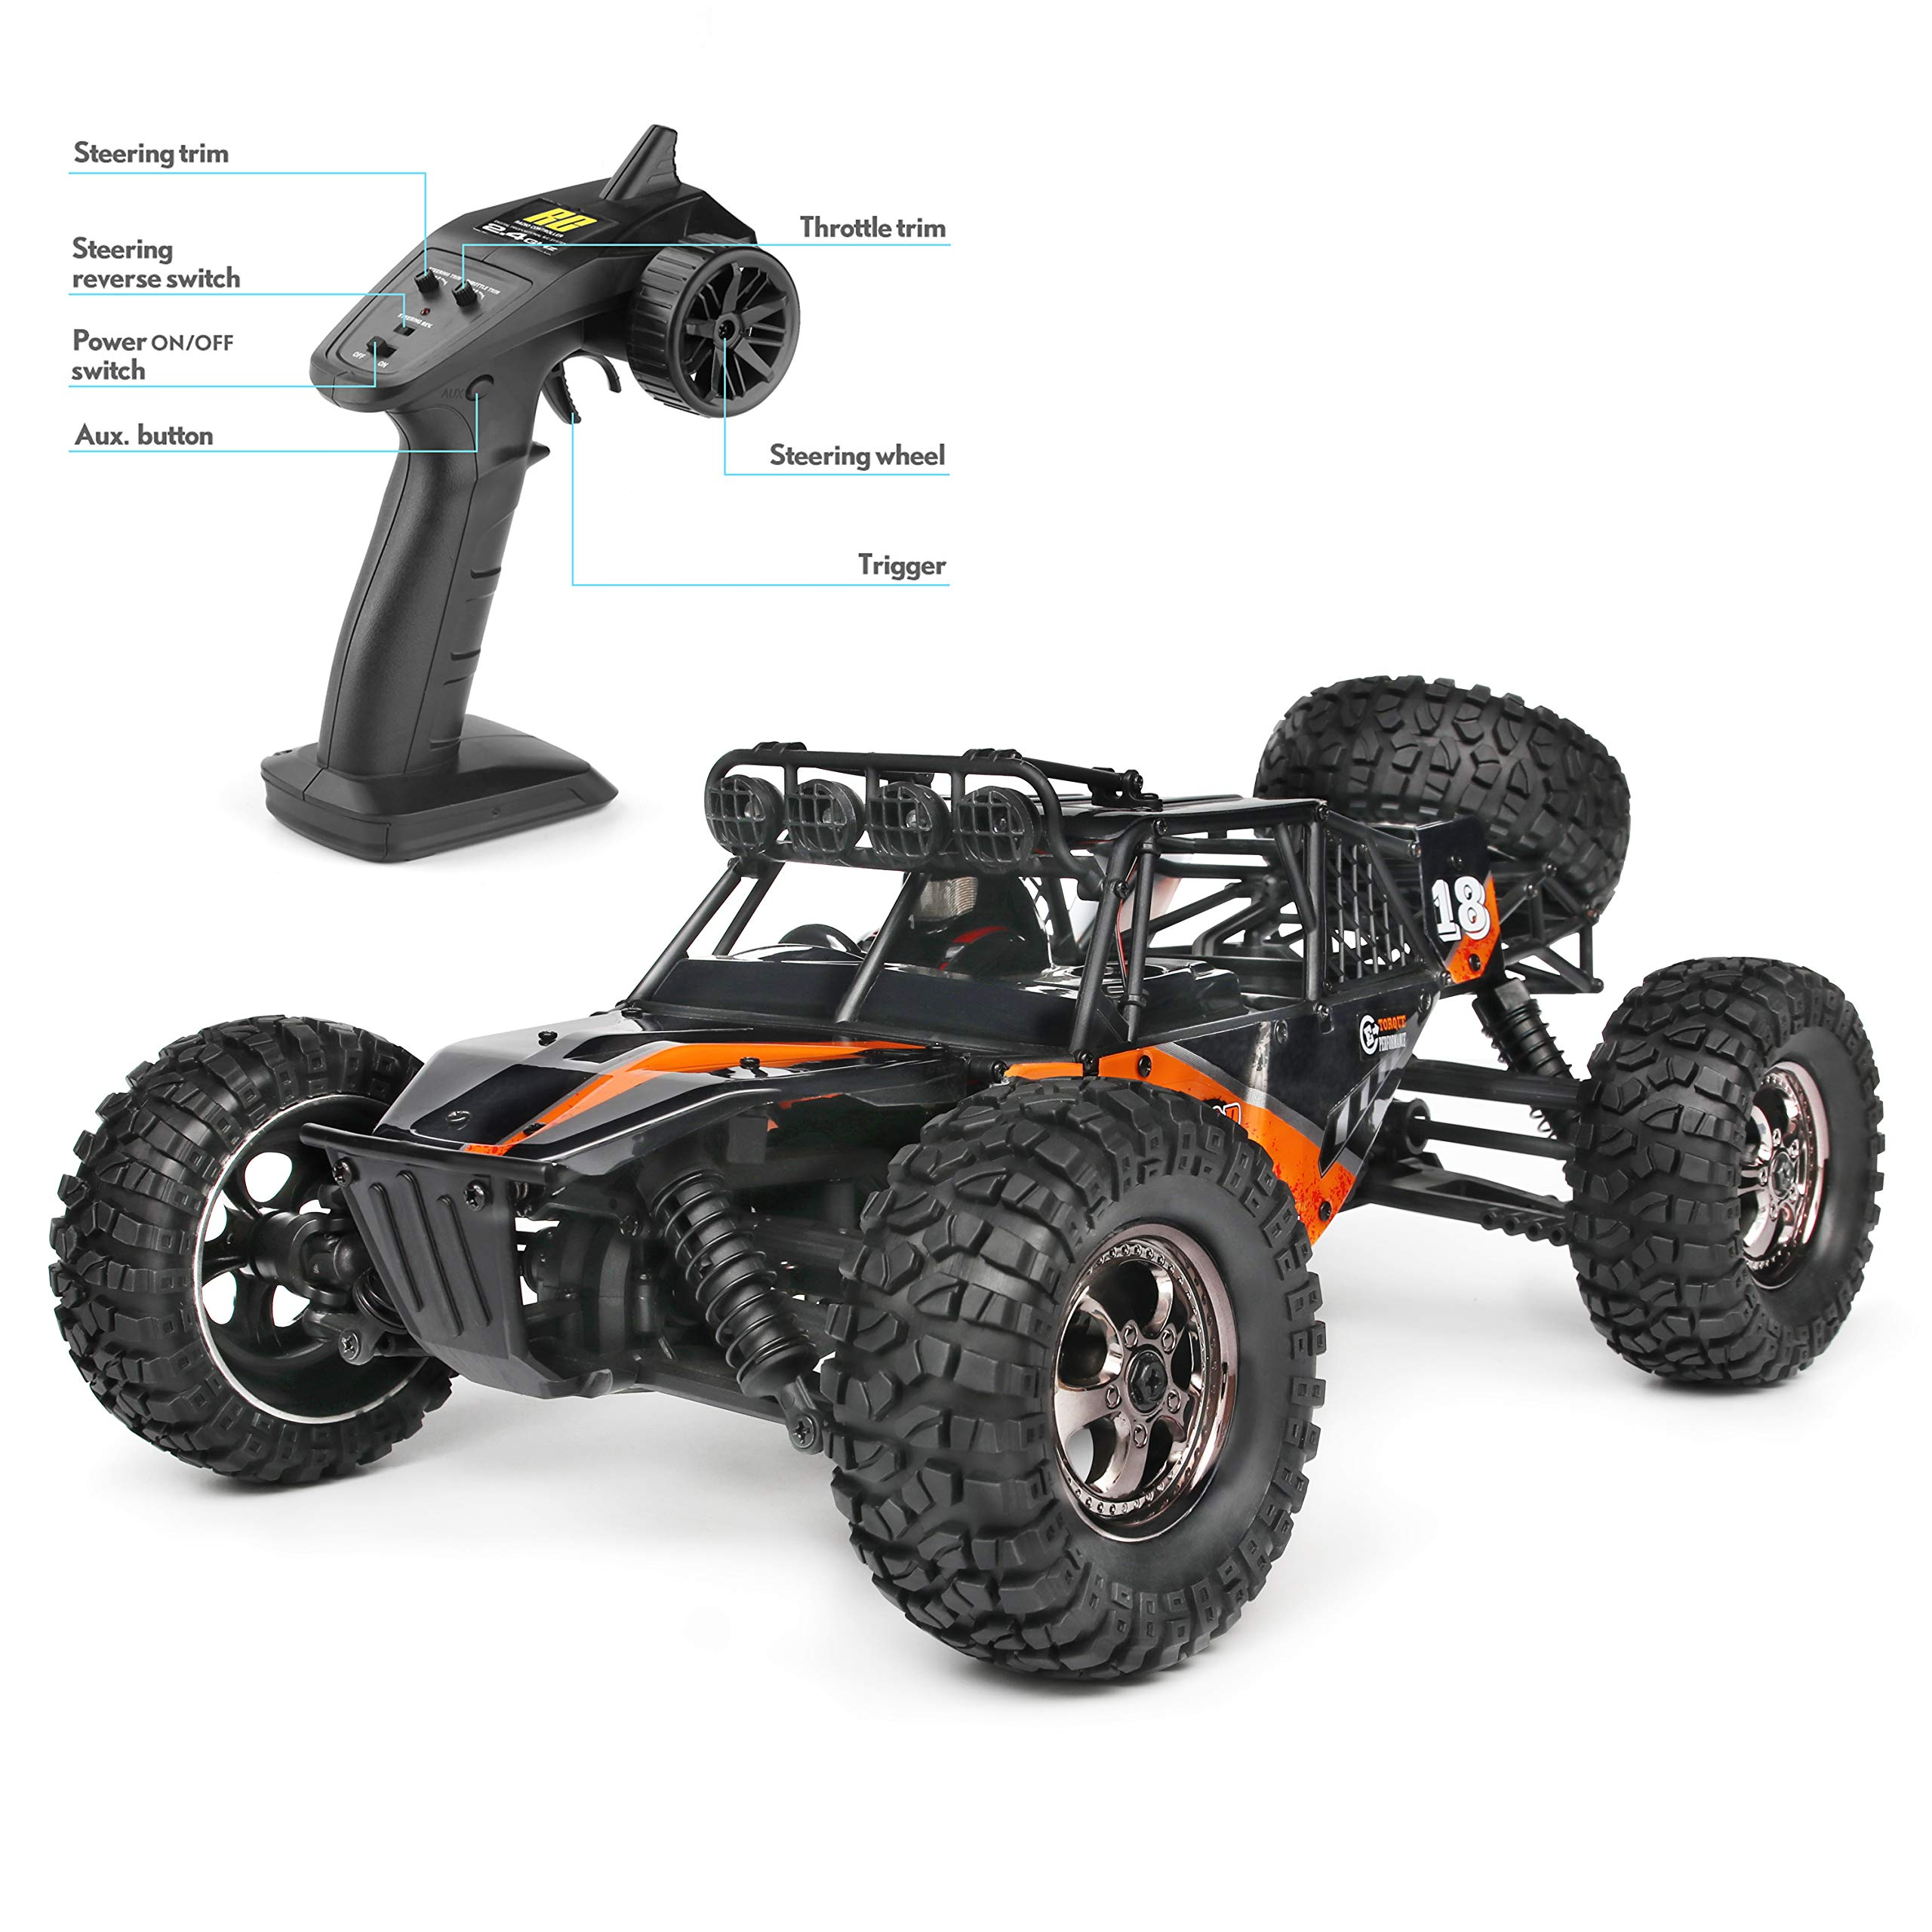 RC Cars Protector 1/12 Scale 4WD Off-Road Buggy 38+KM/H High Speed LED Lights, 2.4 GHz Radio Controlled All Terrain Waterproof Trucks RTR Electric Power Rechargeable Batteries 7.4 V 1500 mAh by BBM HOBBY (Image #1)